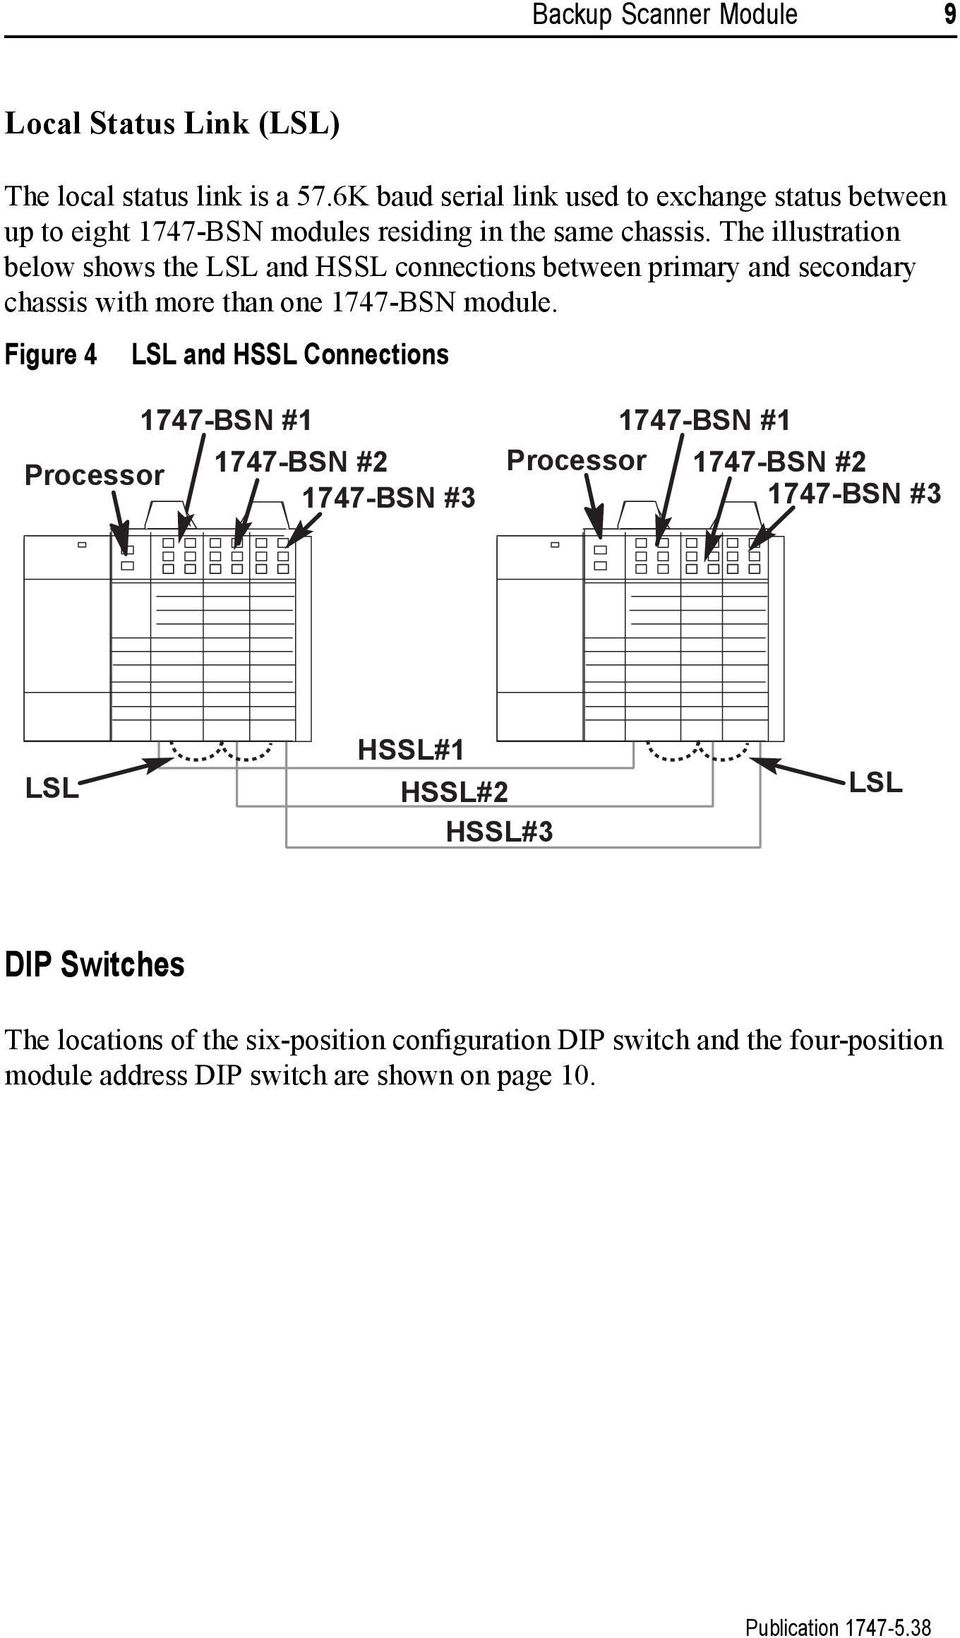 The illustration below shows the LSL and HSSL connections between primary and secondary chassis with more than one 1747-BSN module.